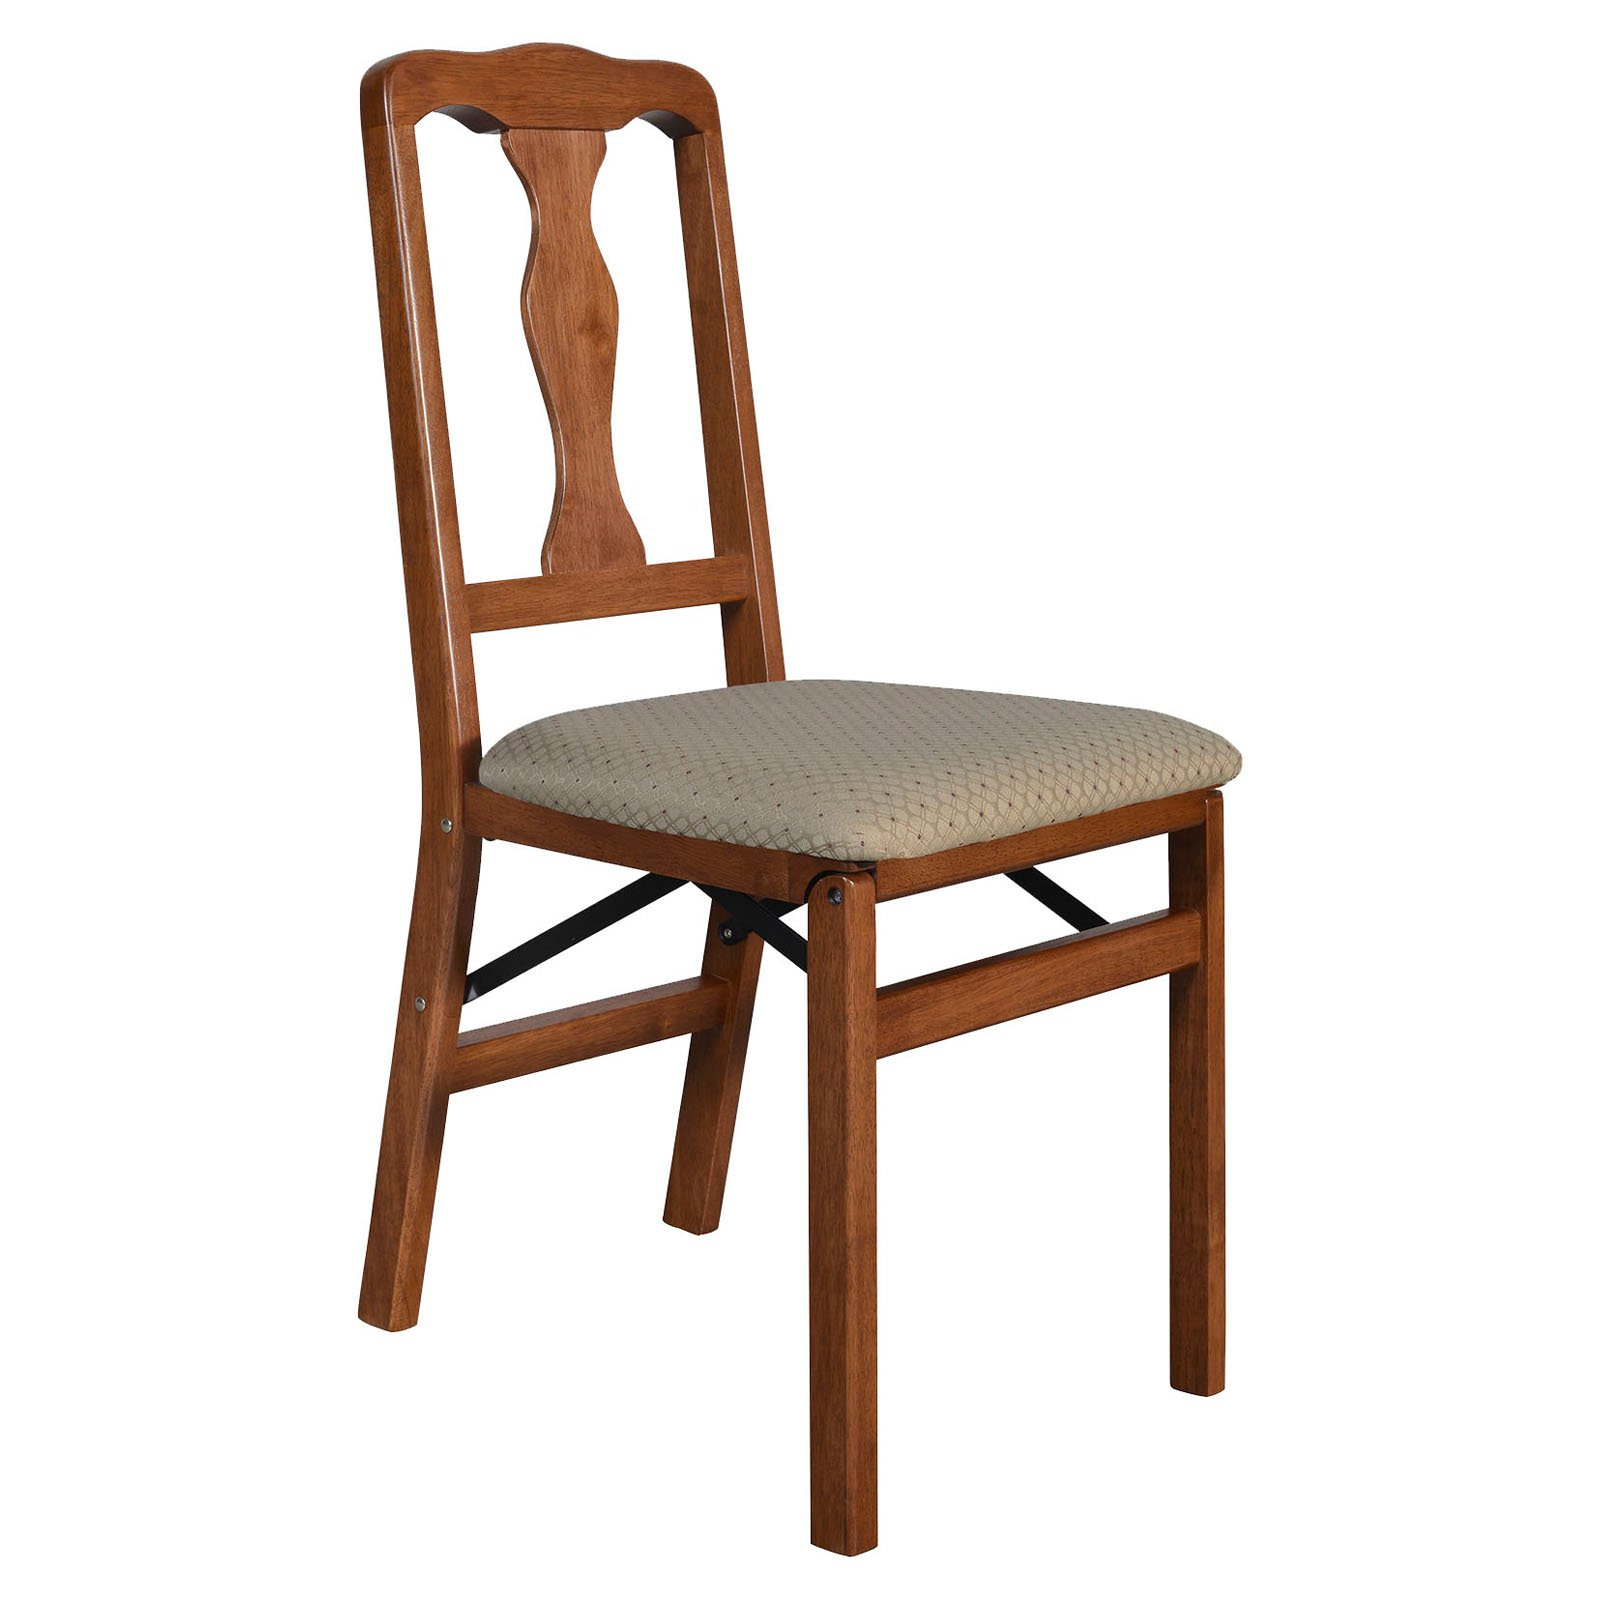 Folding Wooden Chairs Stakmore Queen Anne Upholstered Folding Chair Set Of 2